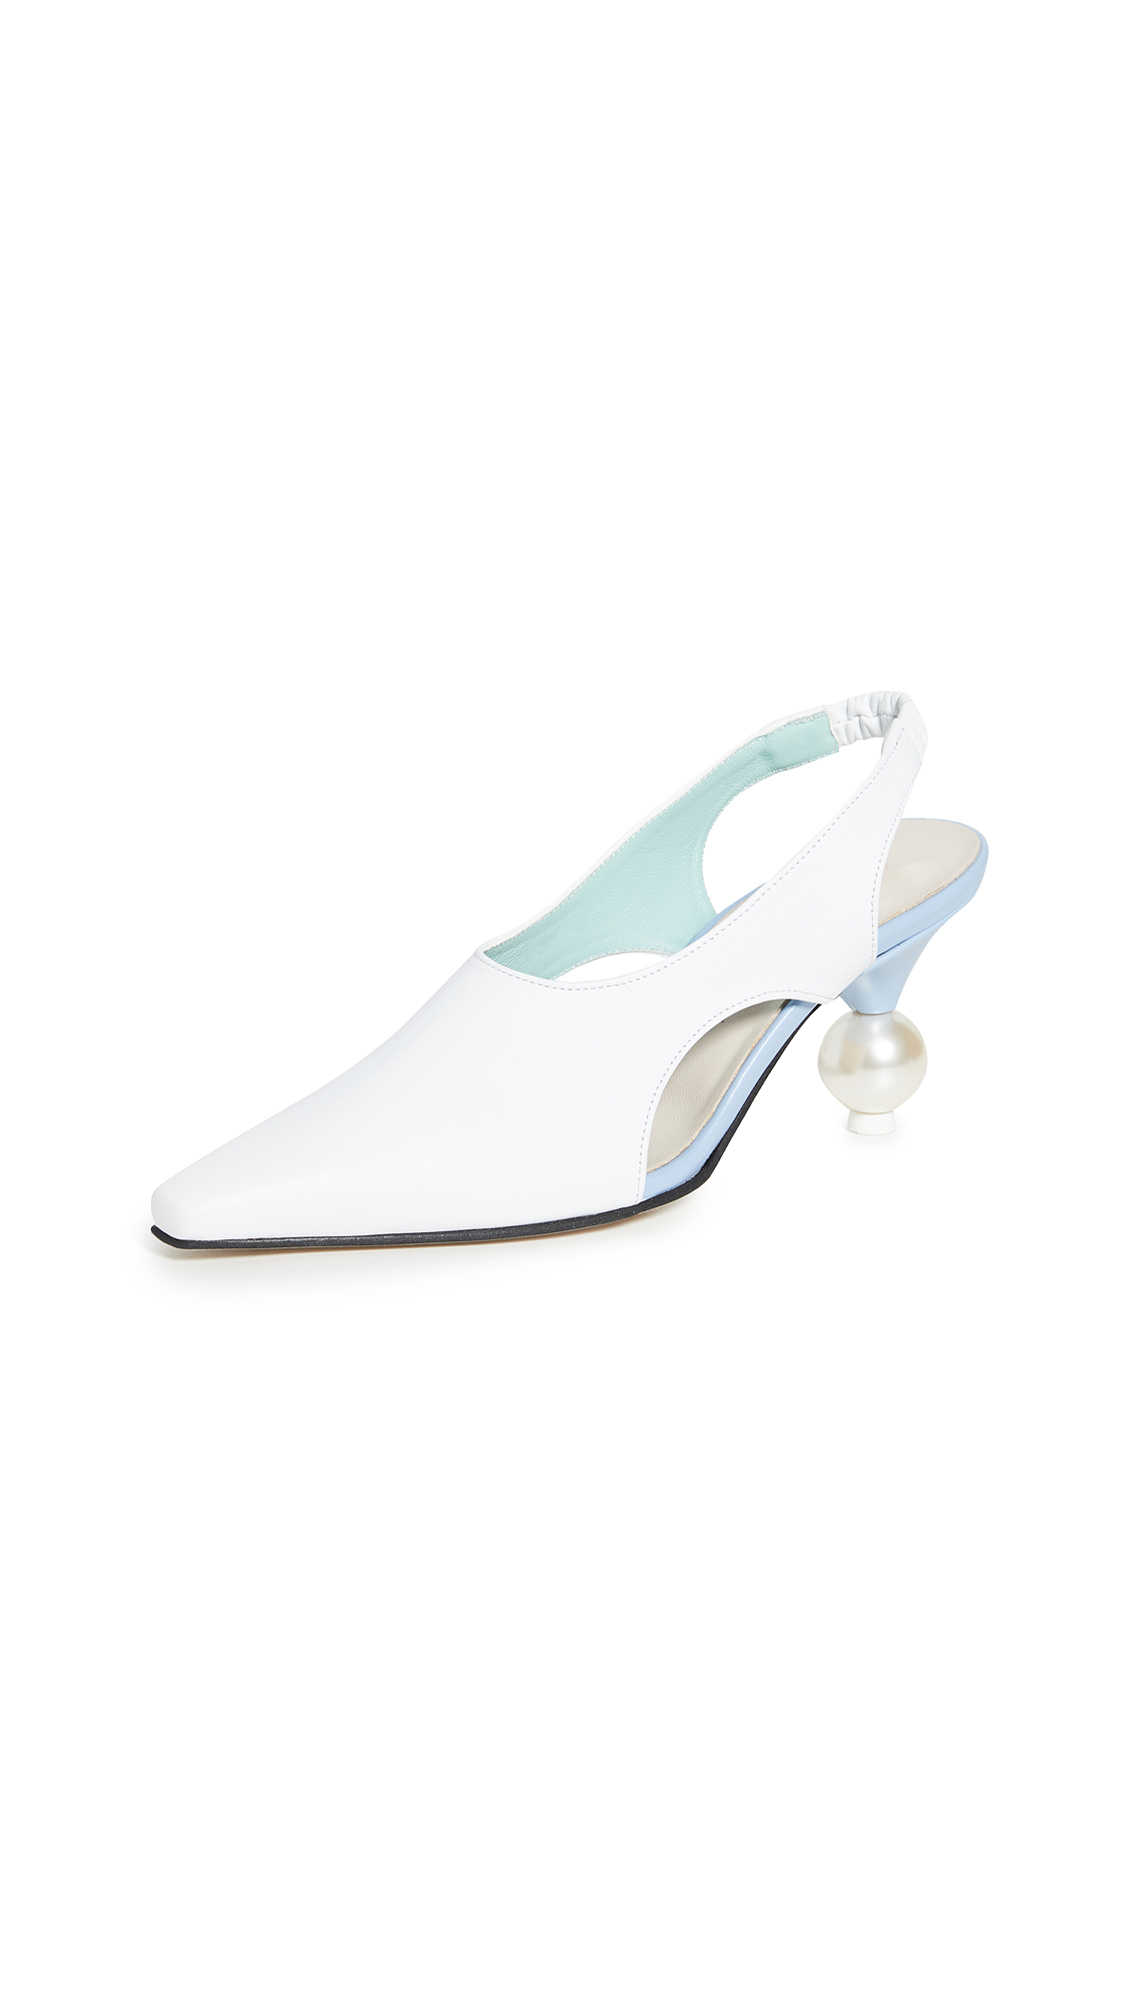 Yuul Yie Pumps EVA SLINGBACK PUMPS